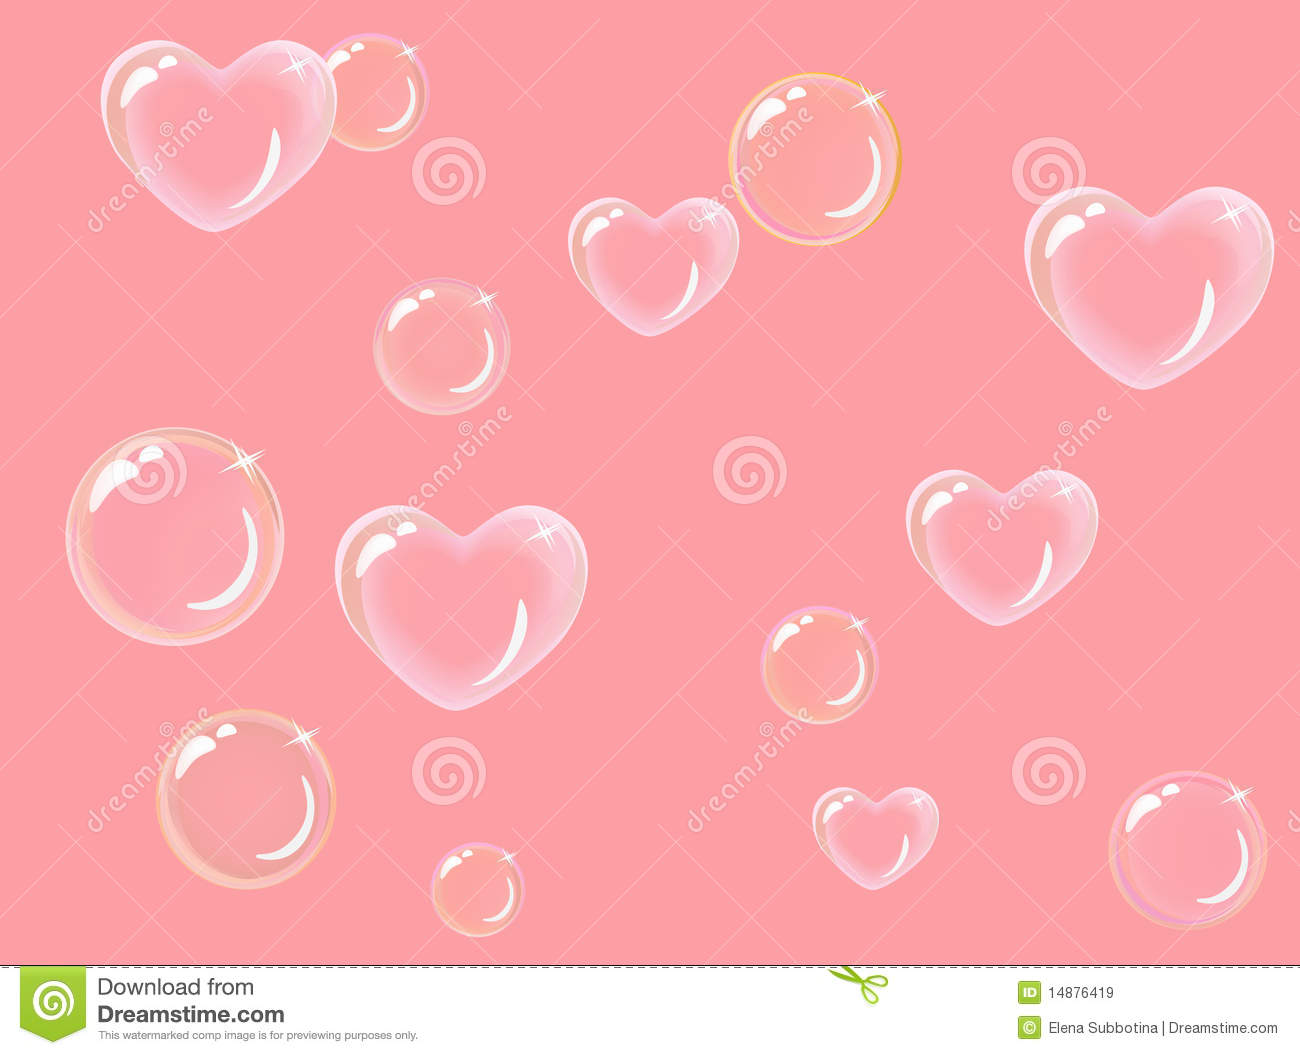 Heart-shaped Soap Bubbles Royalty Free Stock Images - Image: 14876419